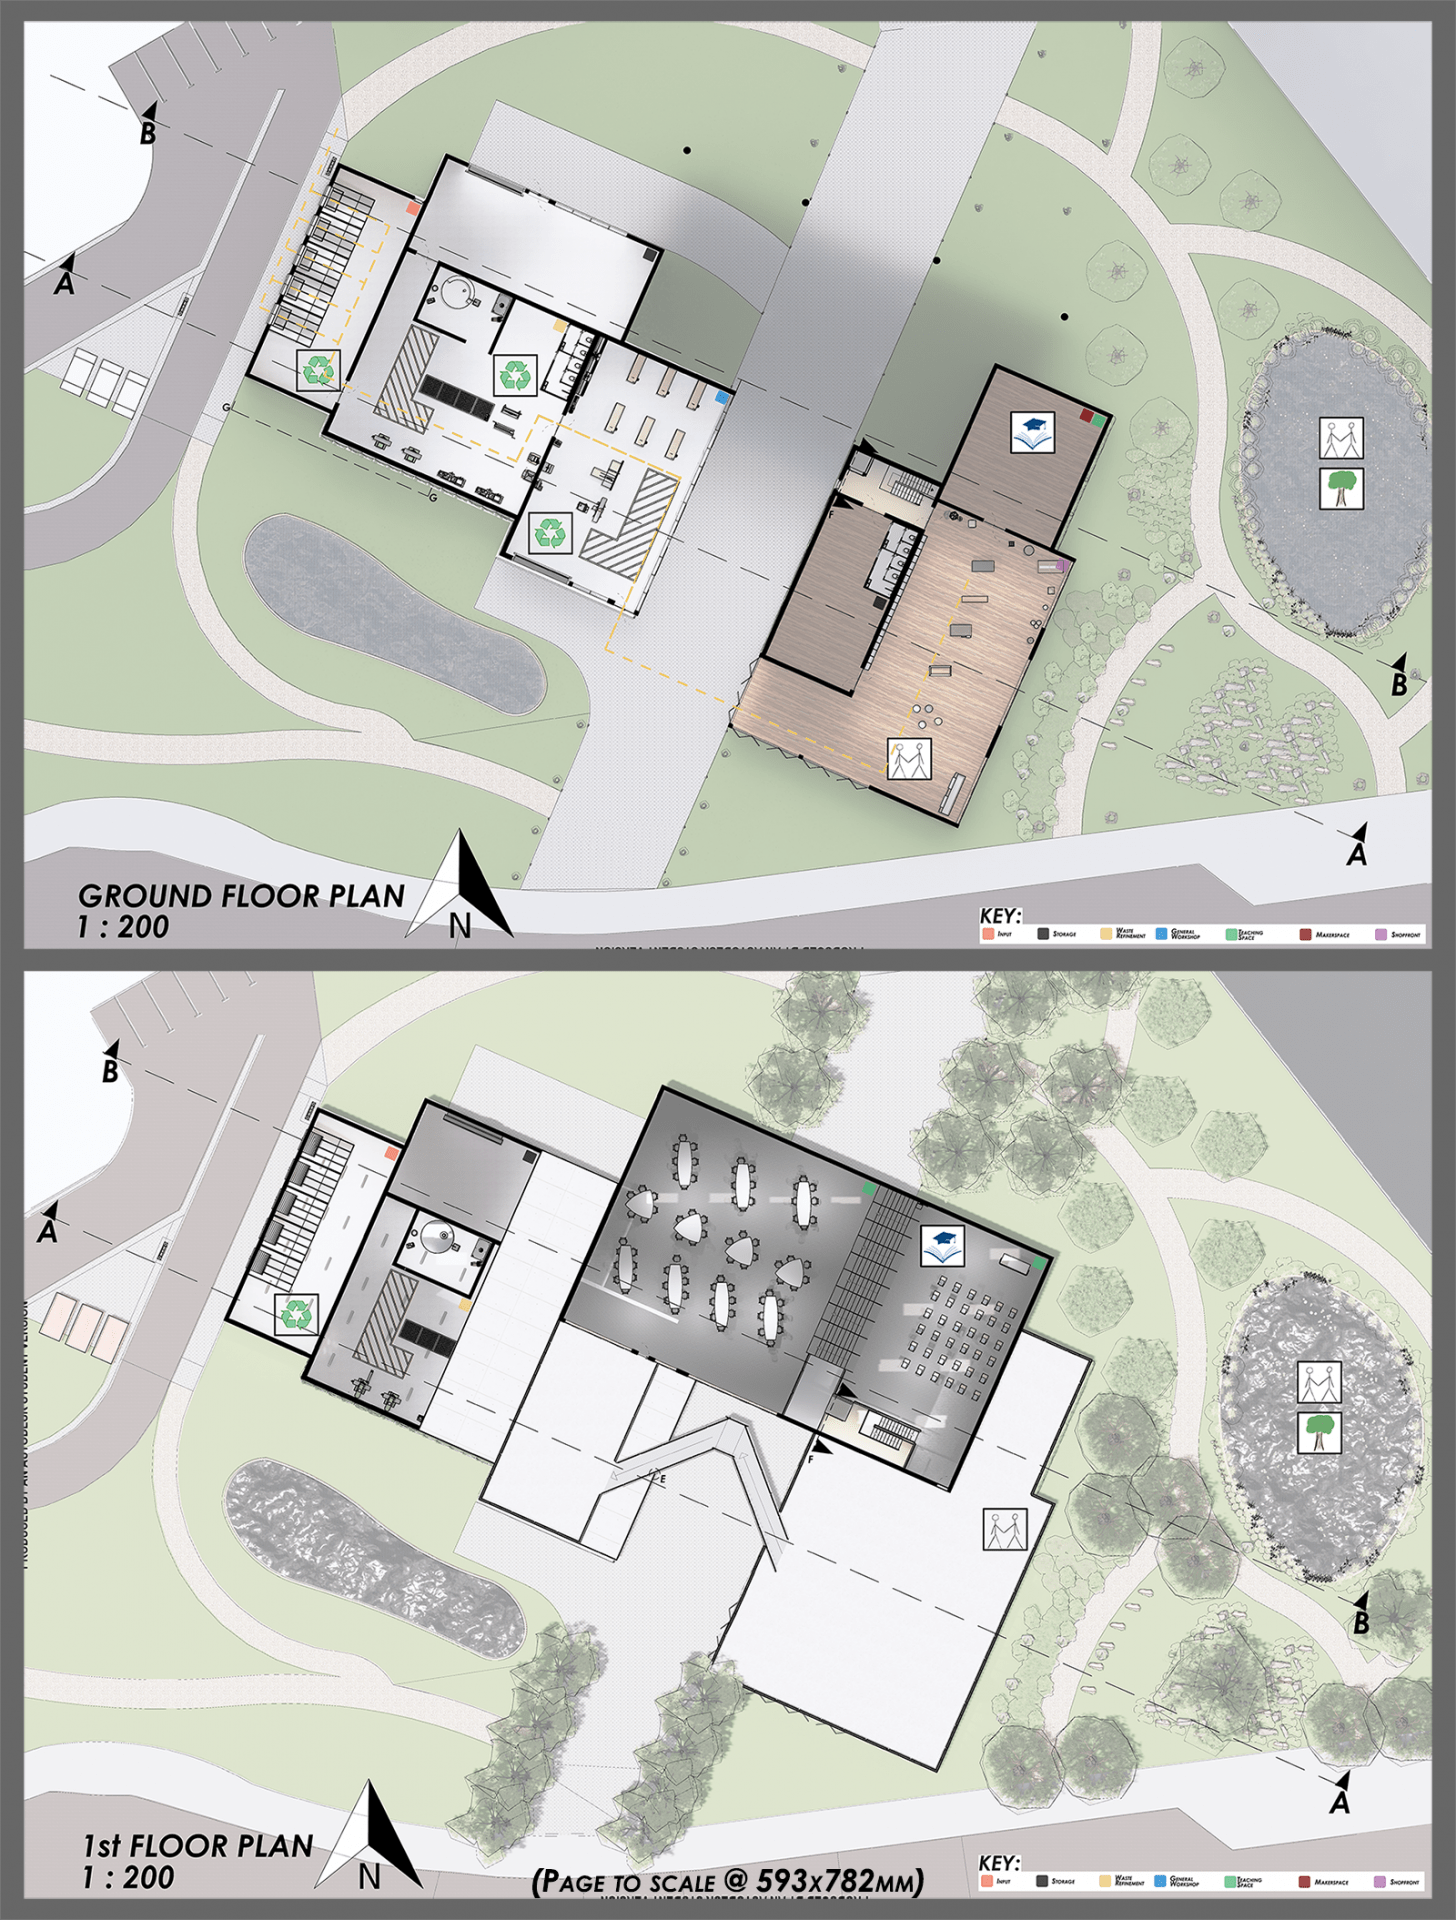 Graphic of the ground and 1st floor plans of the development.